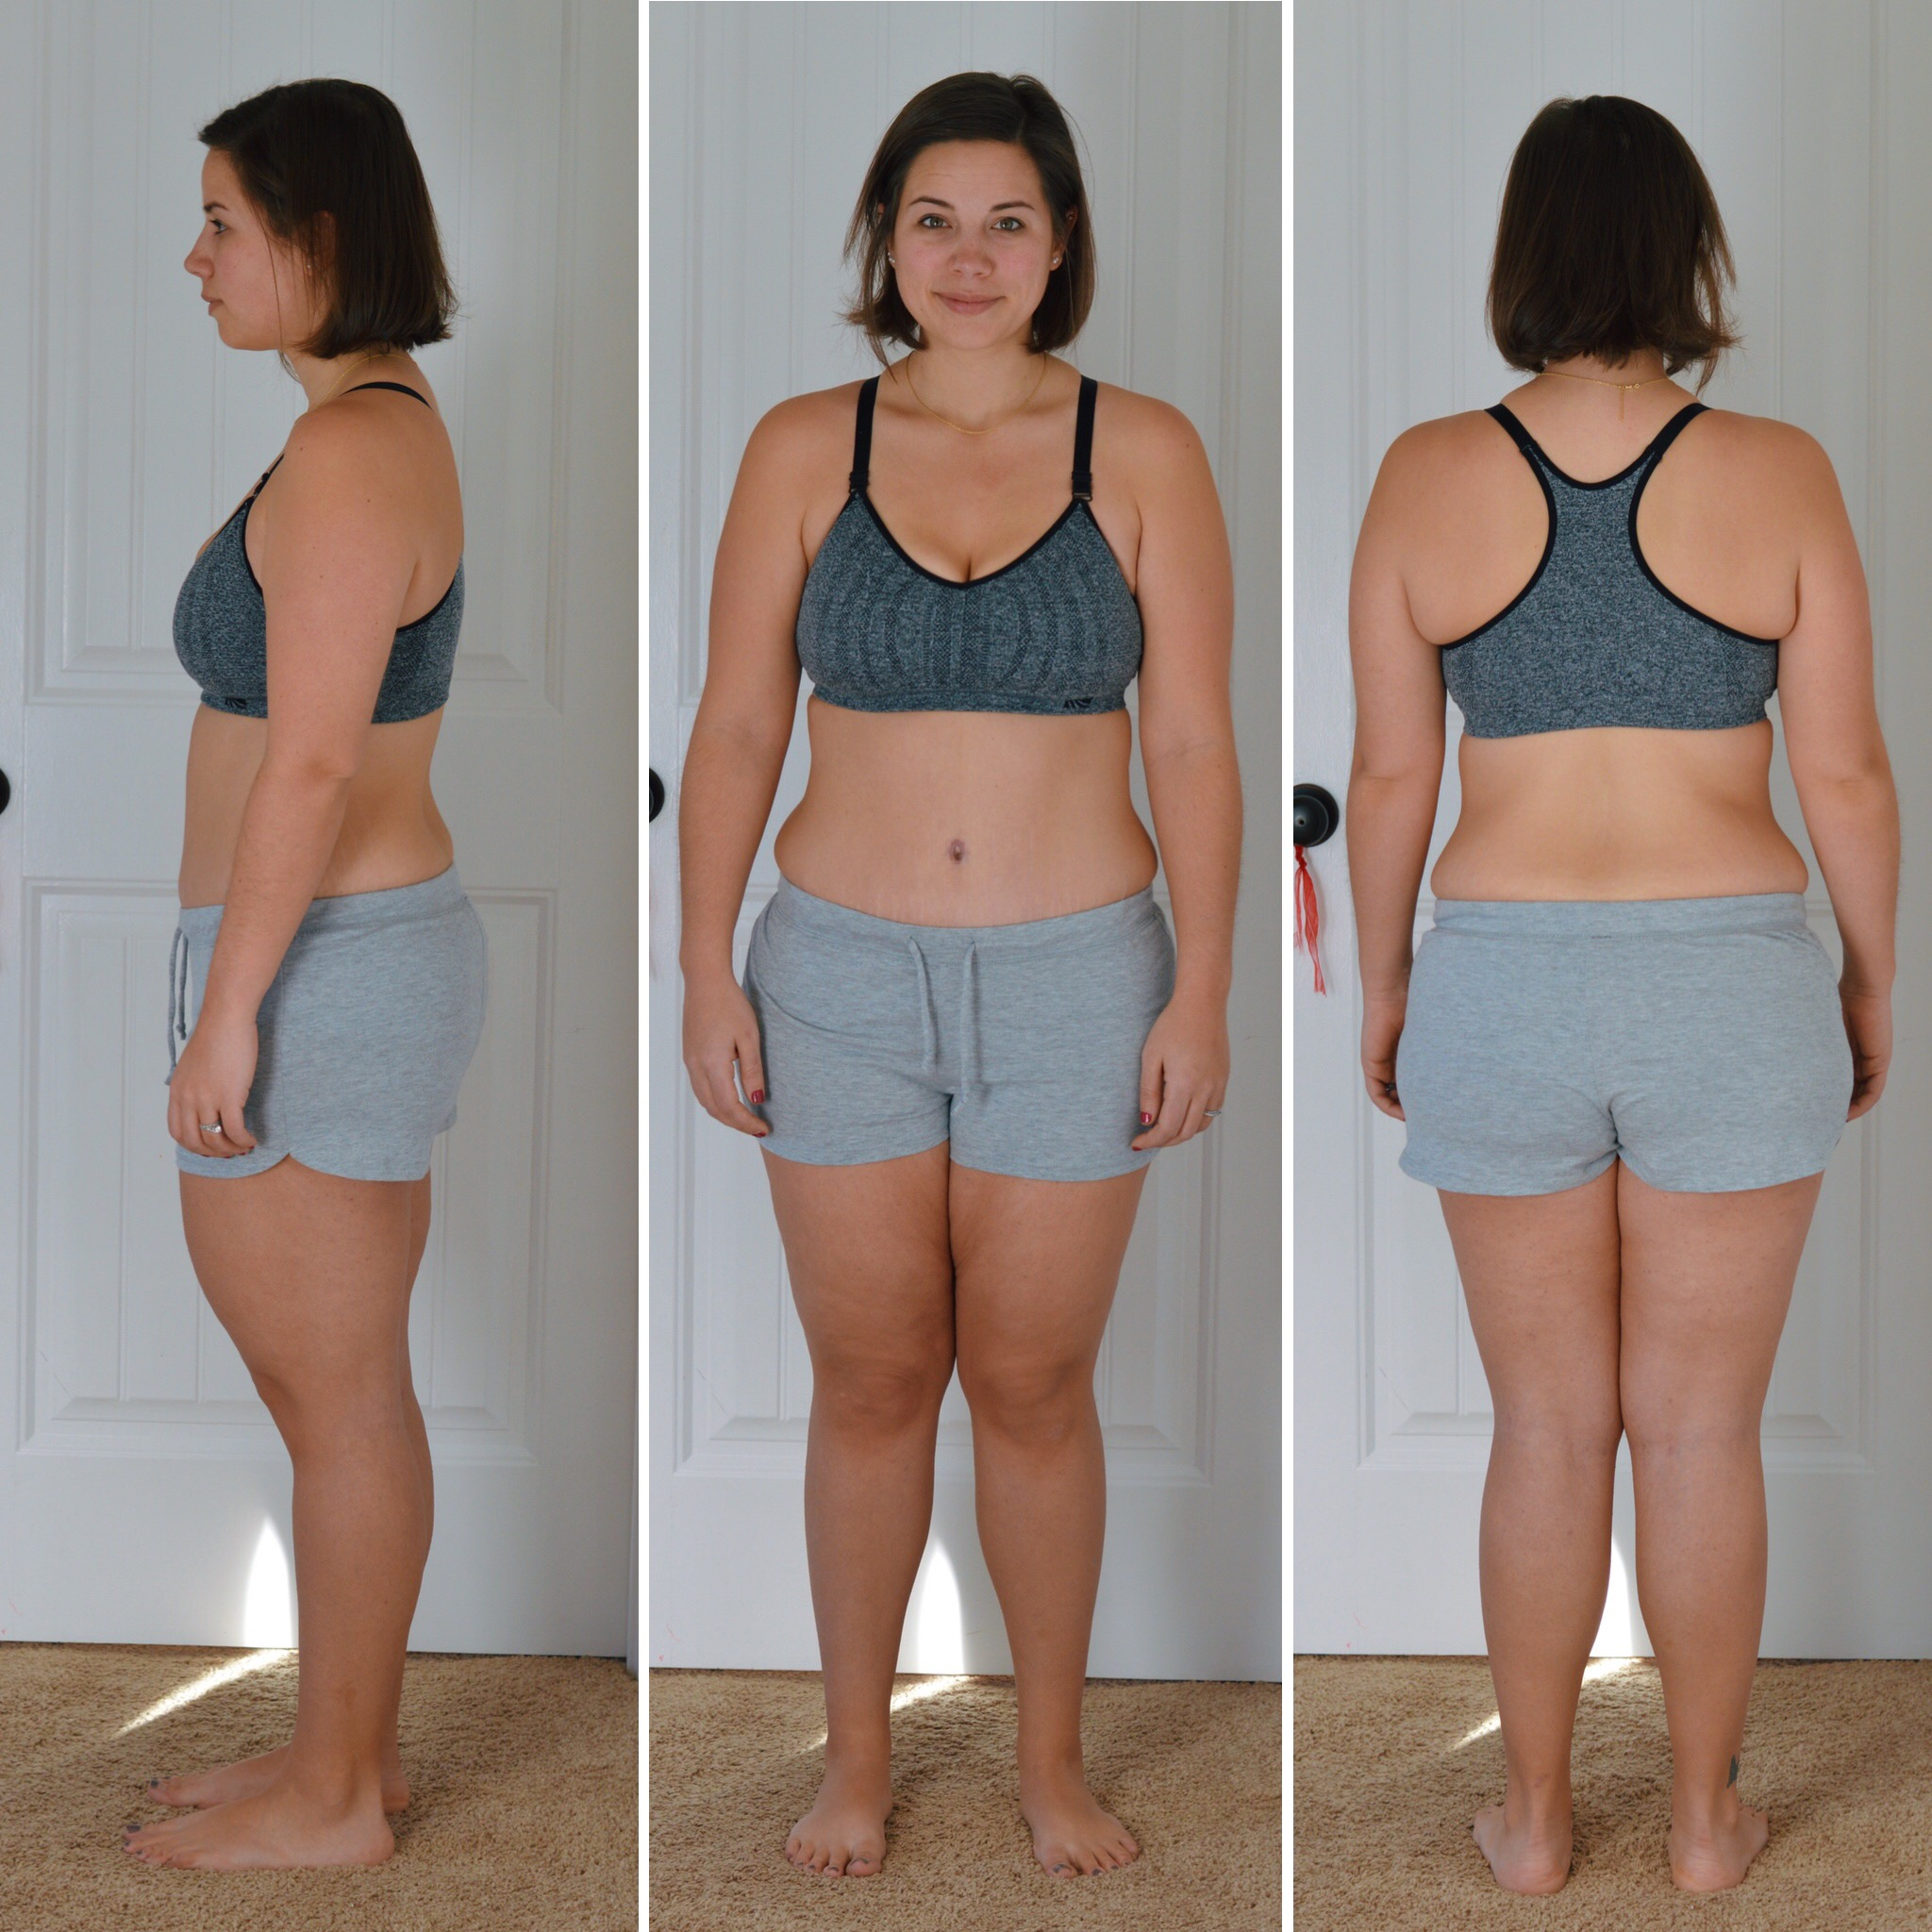 I Re-Gained 20 Pounds, Now What? instantloss.com